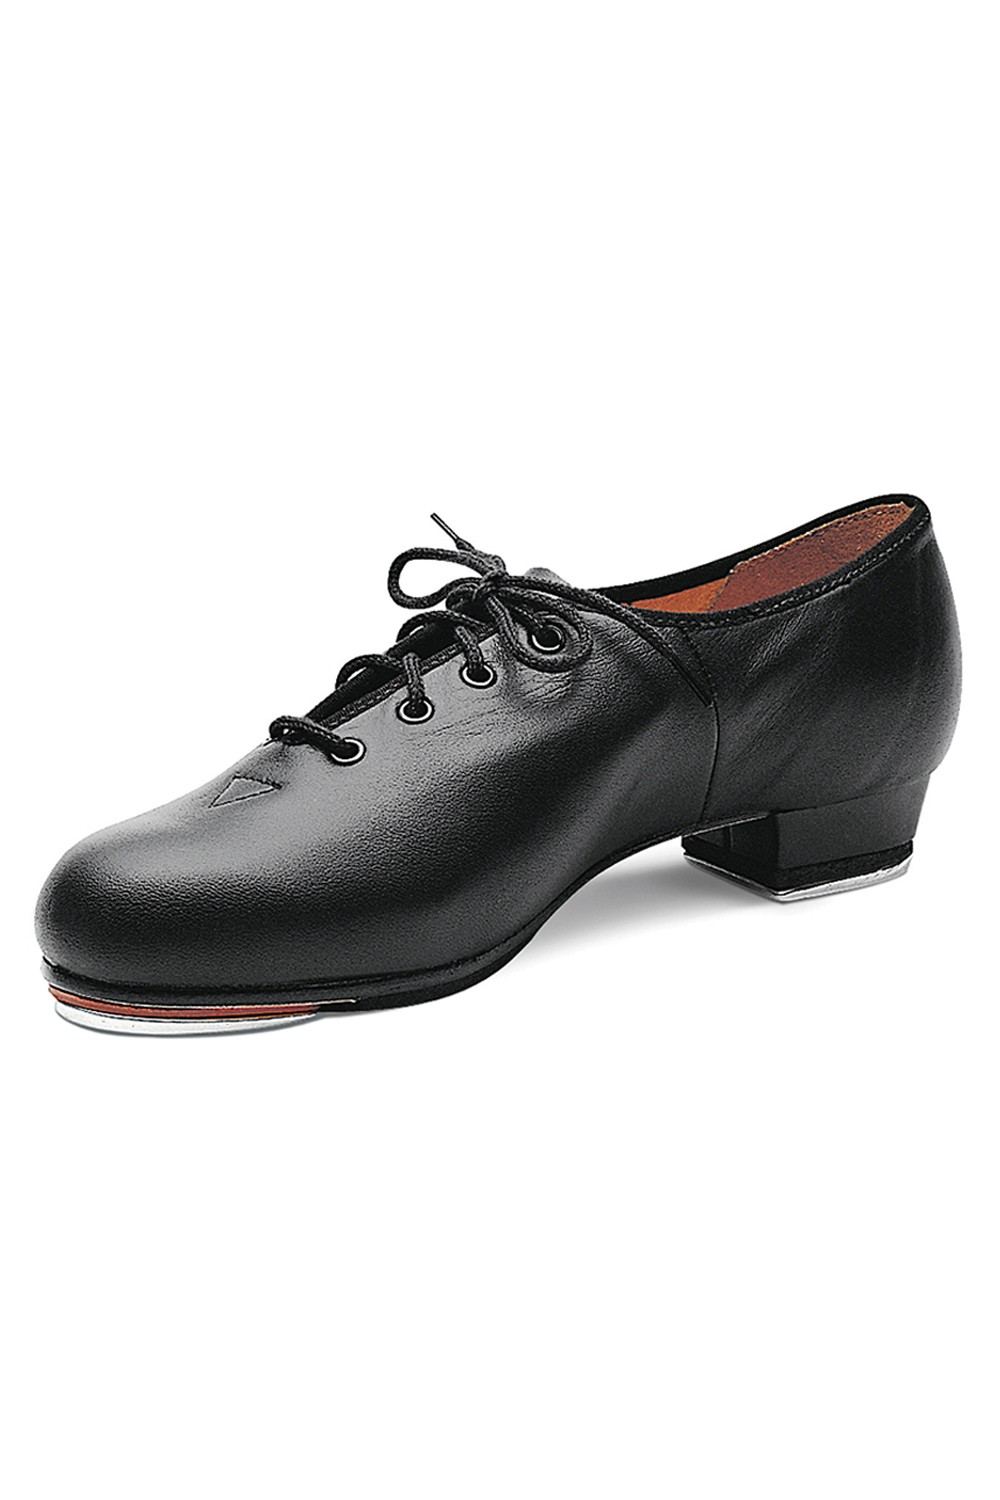 Sapatos De Sapateado Jazz - Homem Men's Tap Shoes